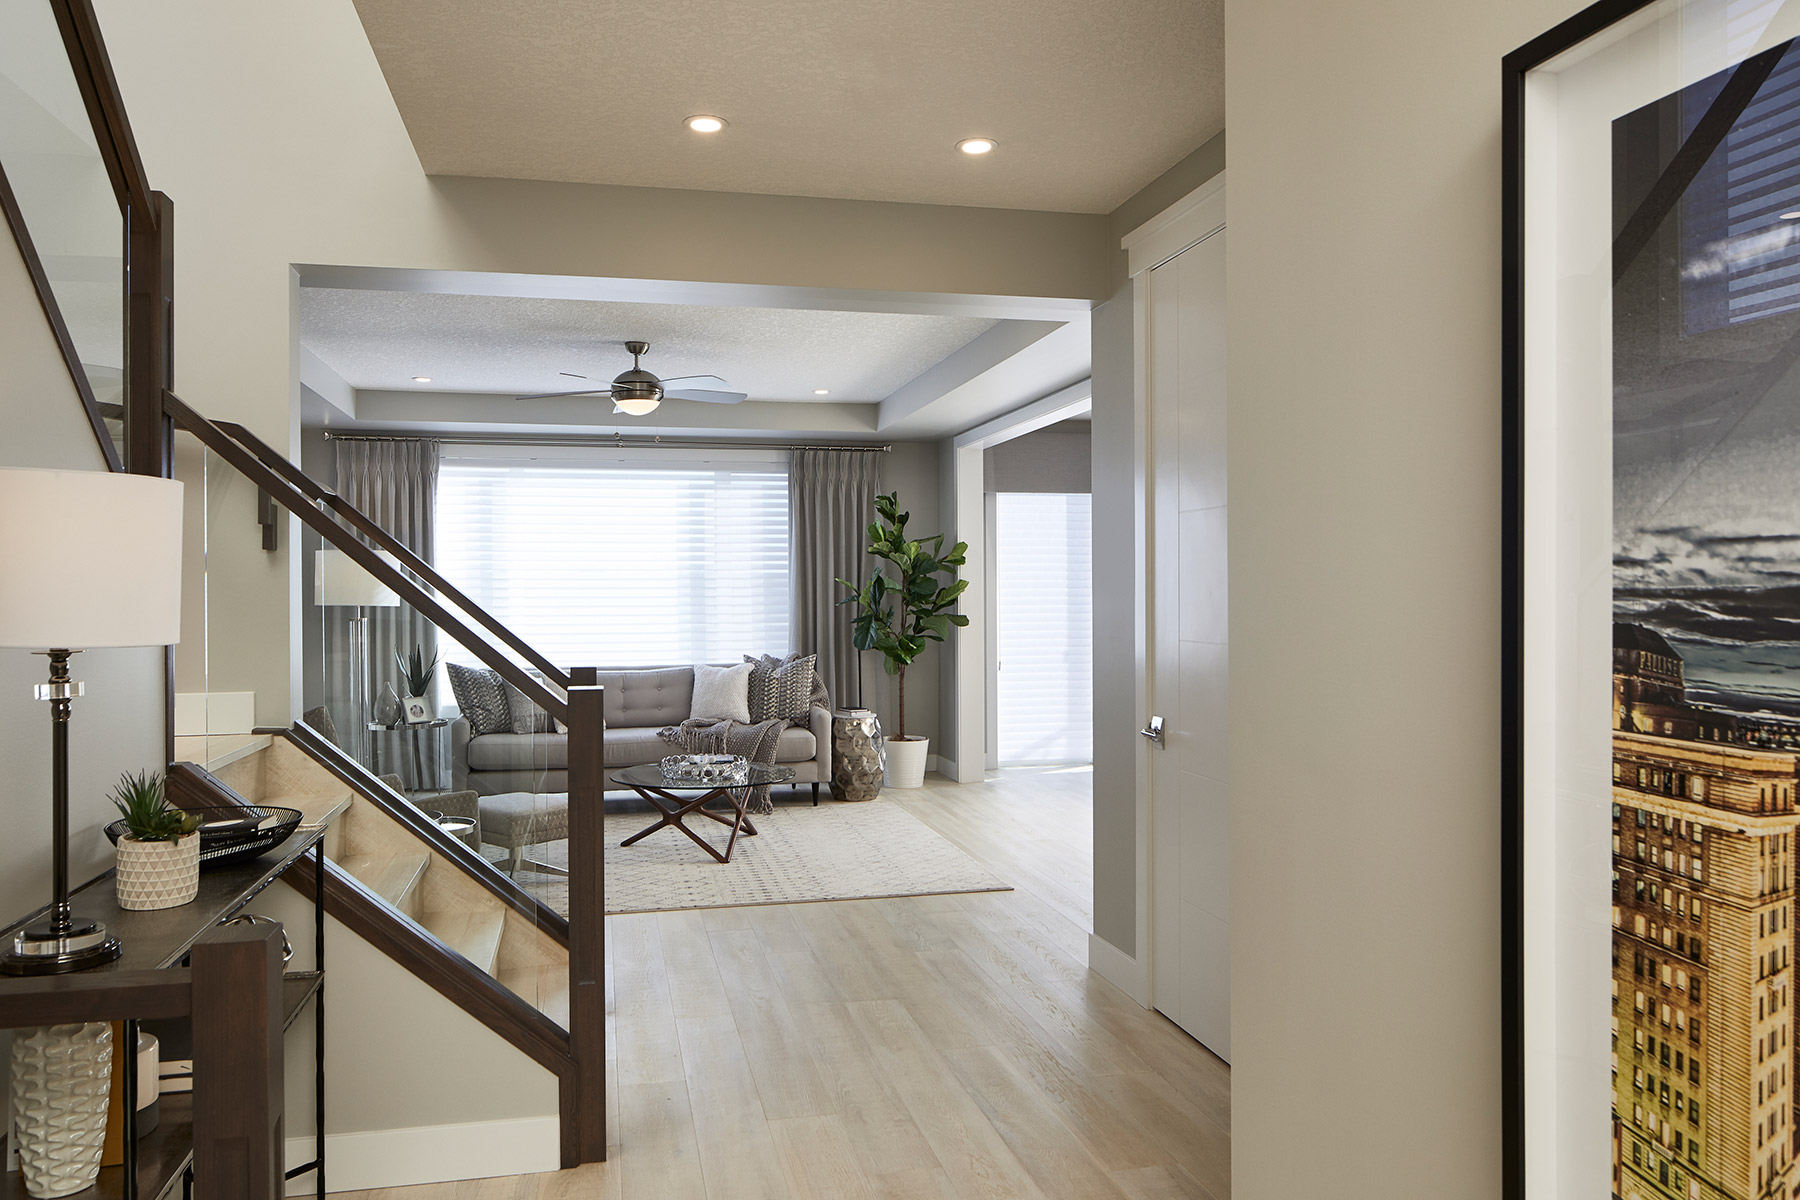 Riedel Plan Hallway at Yorkville in Calgary Alberta by Mattamy Homes